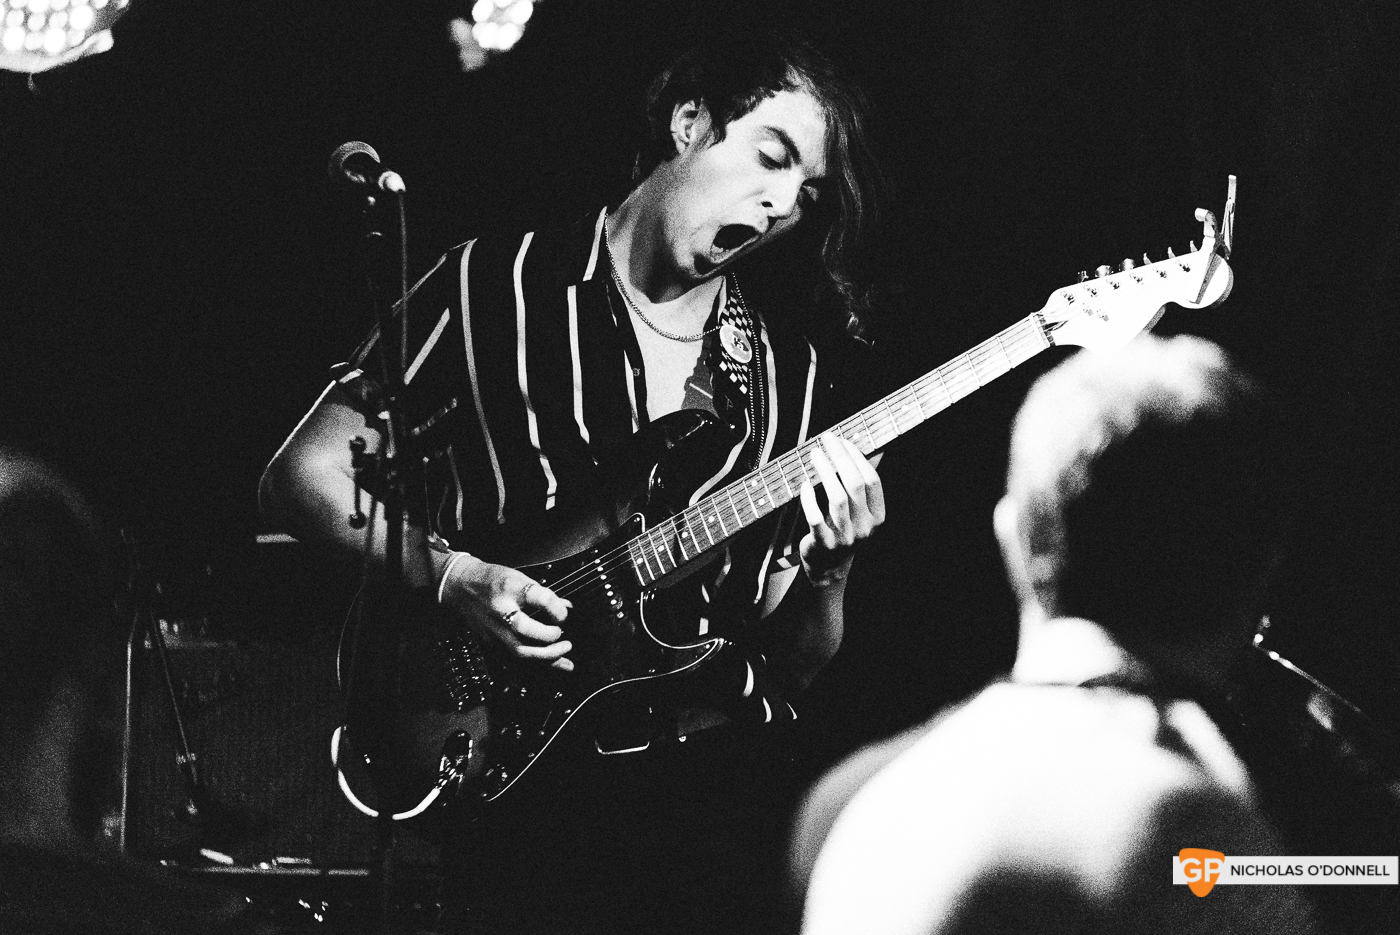 Support 1- Nerves opening for Mattiel in Whelan's. Photos by Nicholas O'Donnell. (5 of 6)